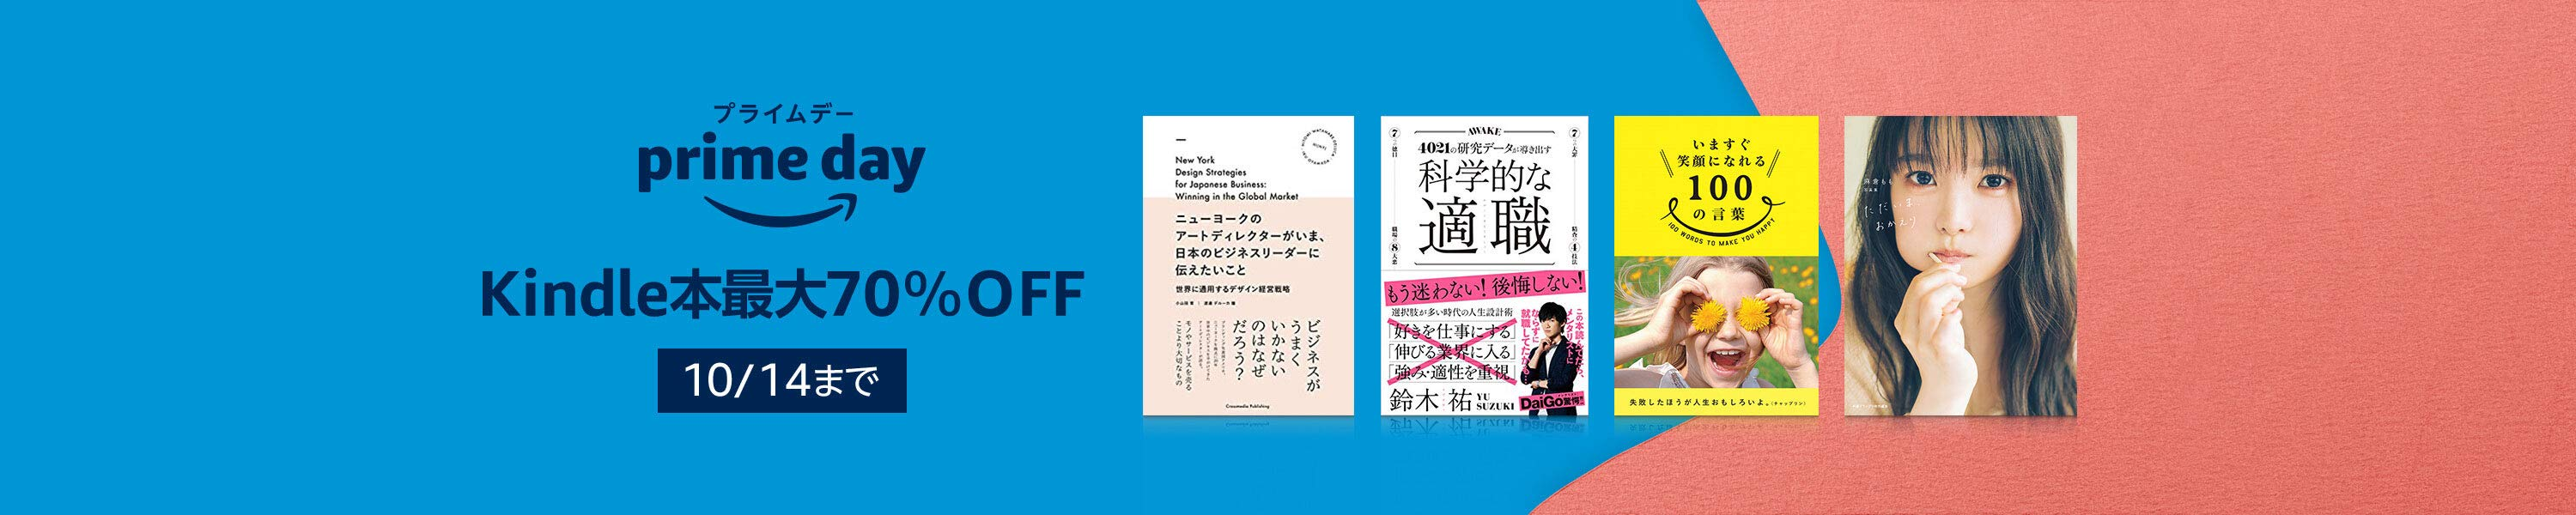 Kindle本最大70%OFF